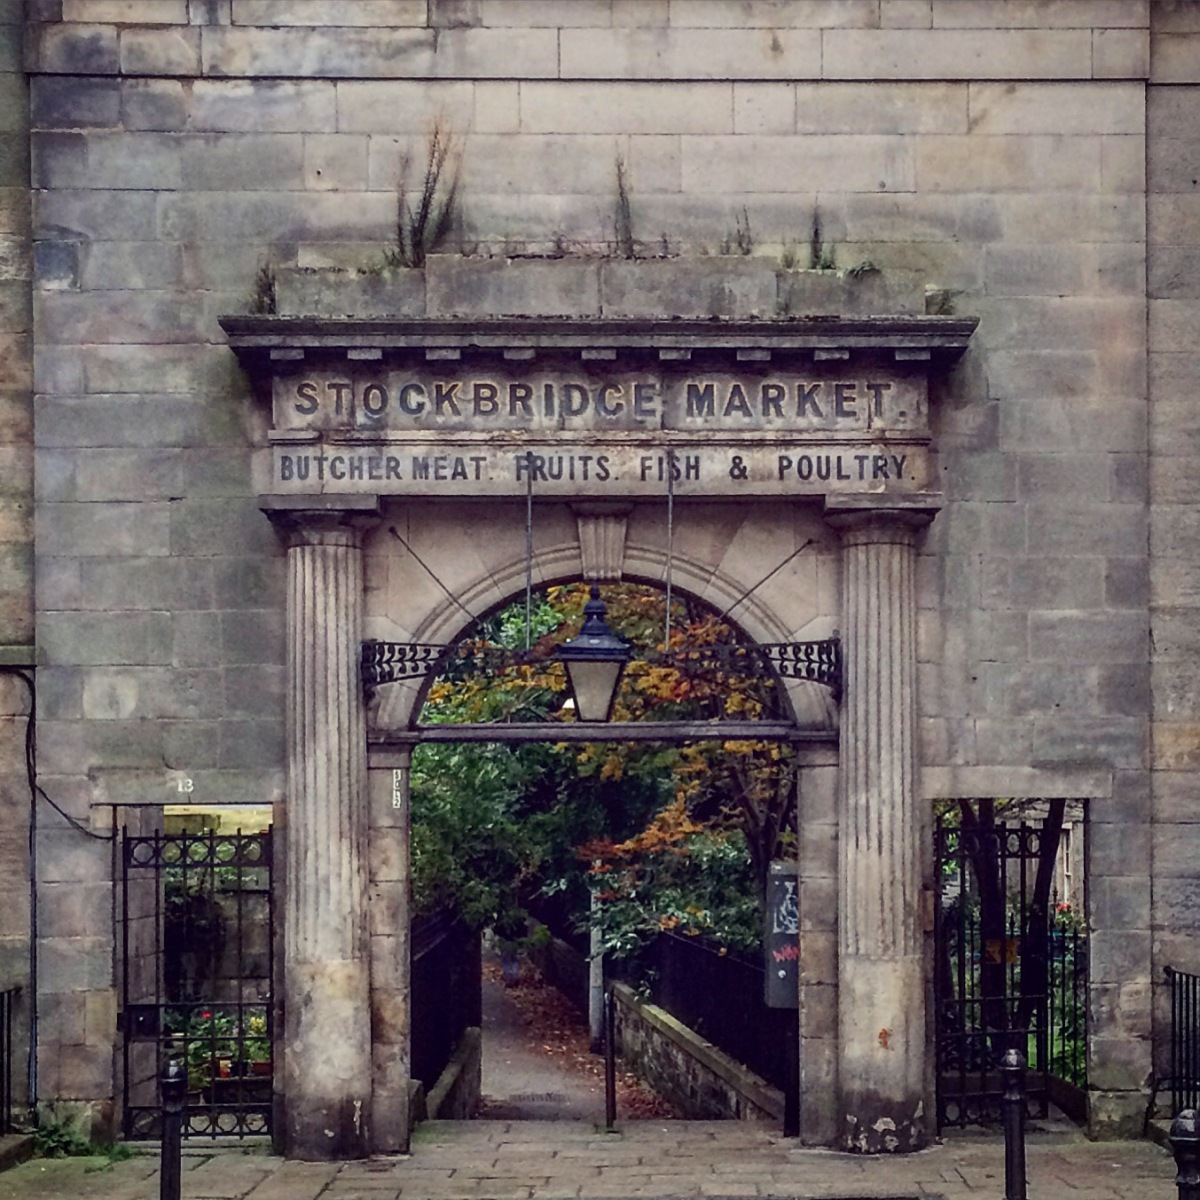 Alternative Edinburgh: a day in Stockbridge